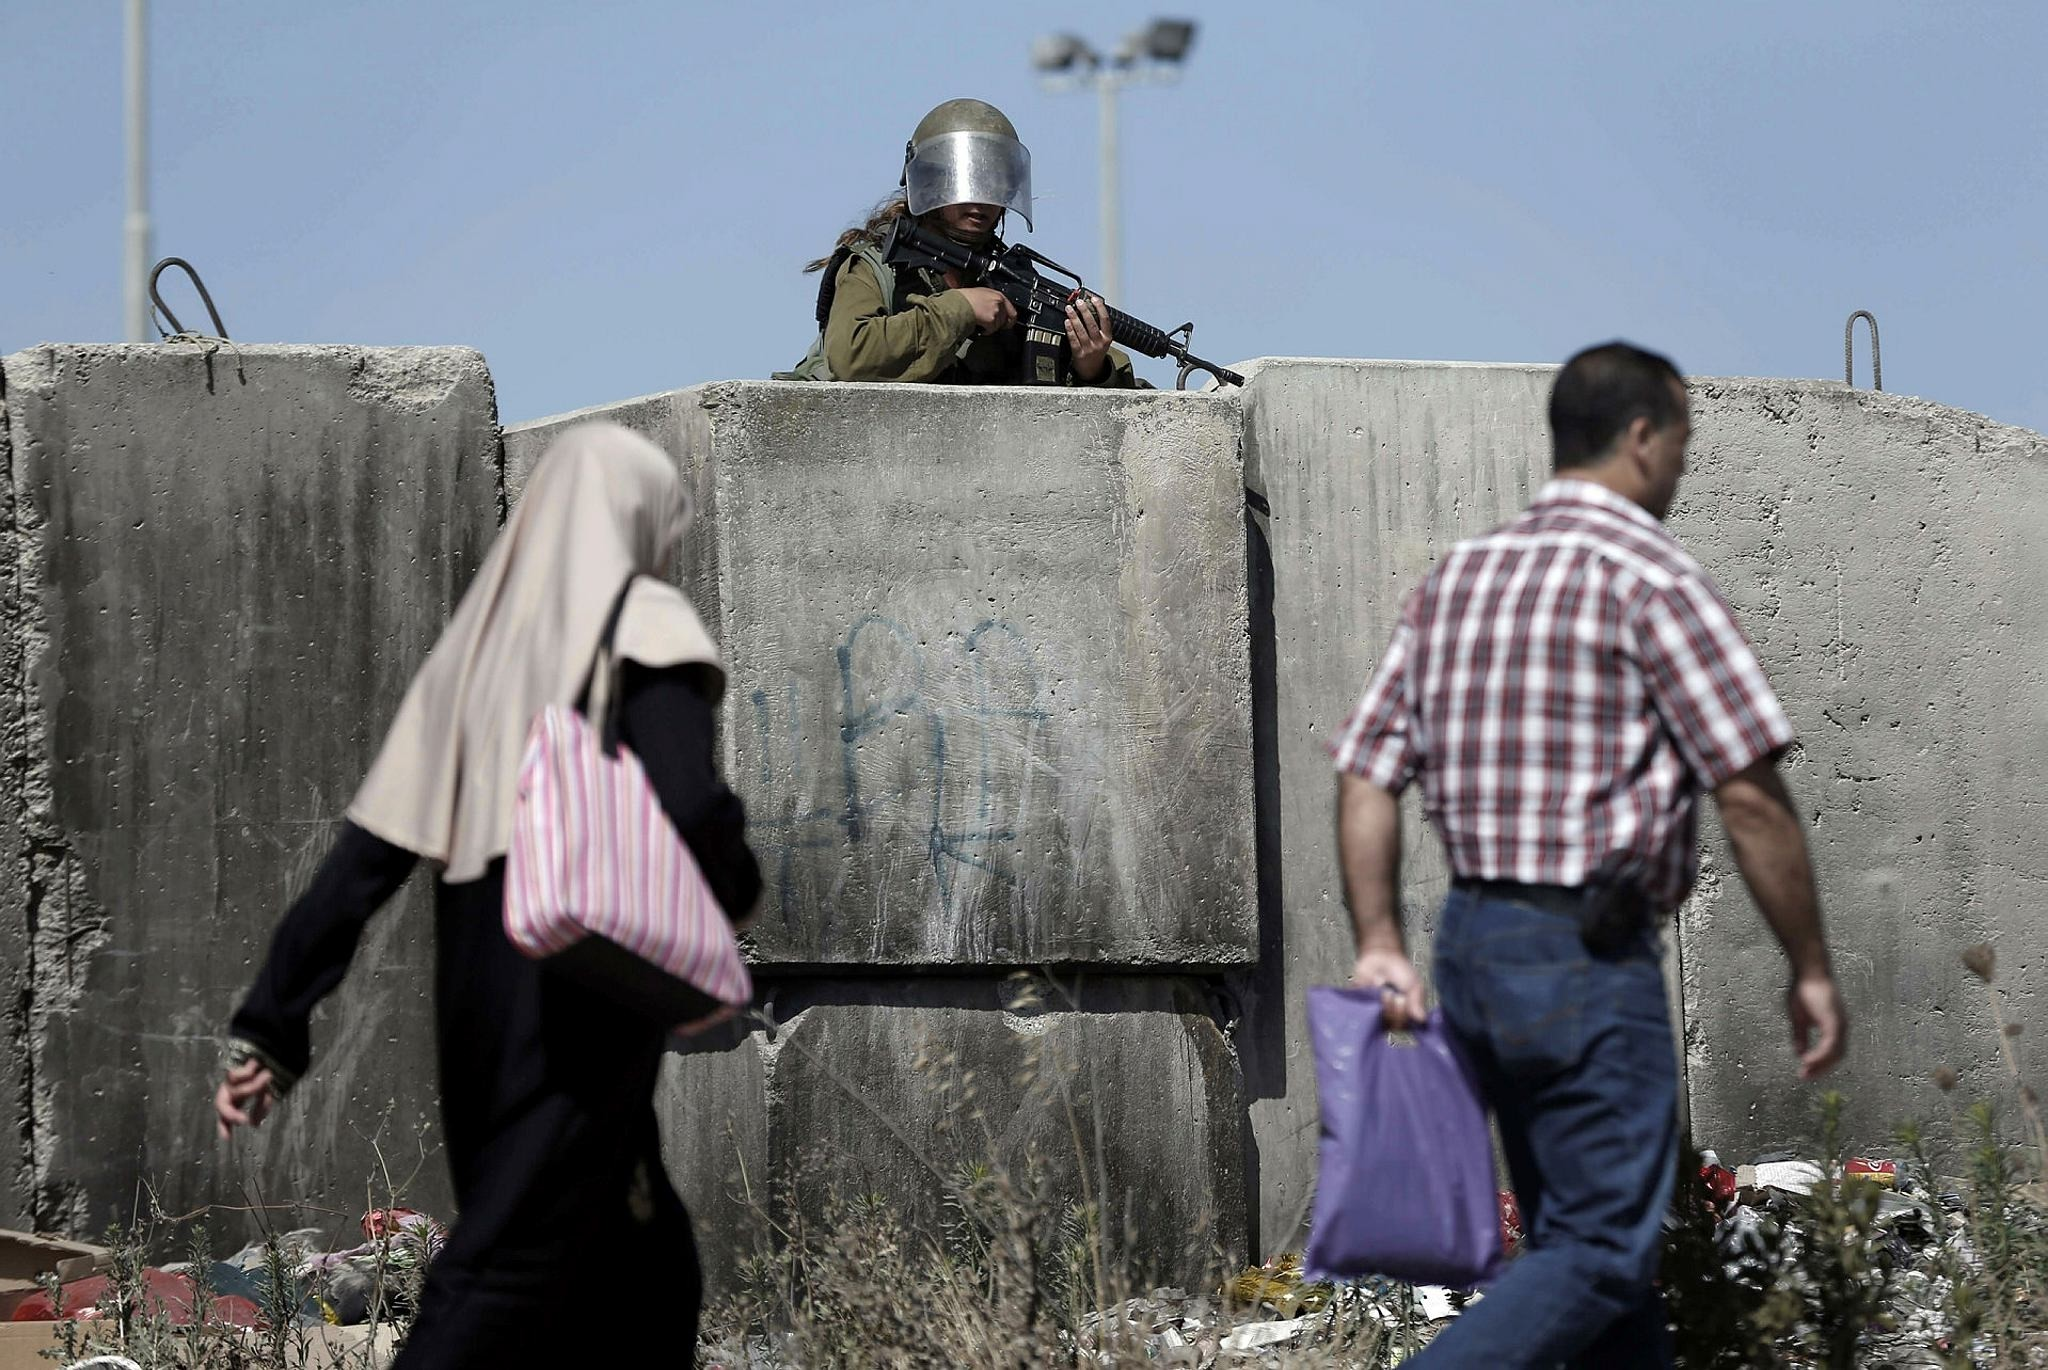 A female Israeli soldier stands guard at the Qalandia checkpoint, south of Ramallah, as thousands of Palestinians wait to cross from the West Bank to Jerusalem.